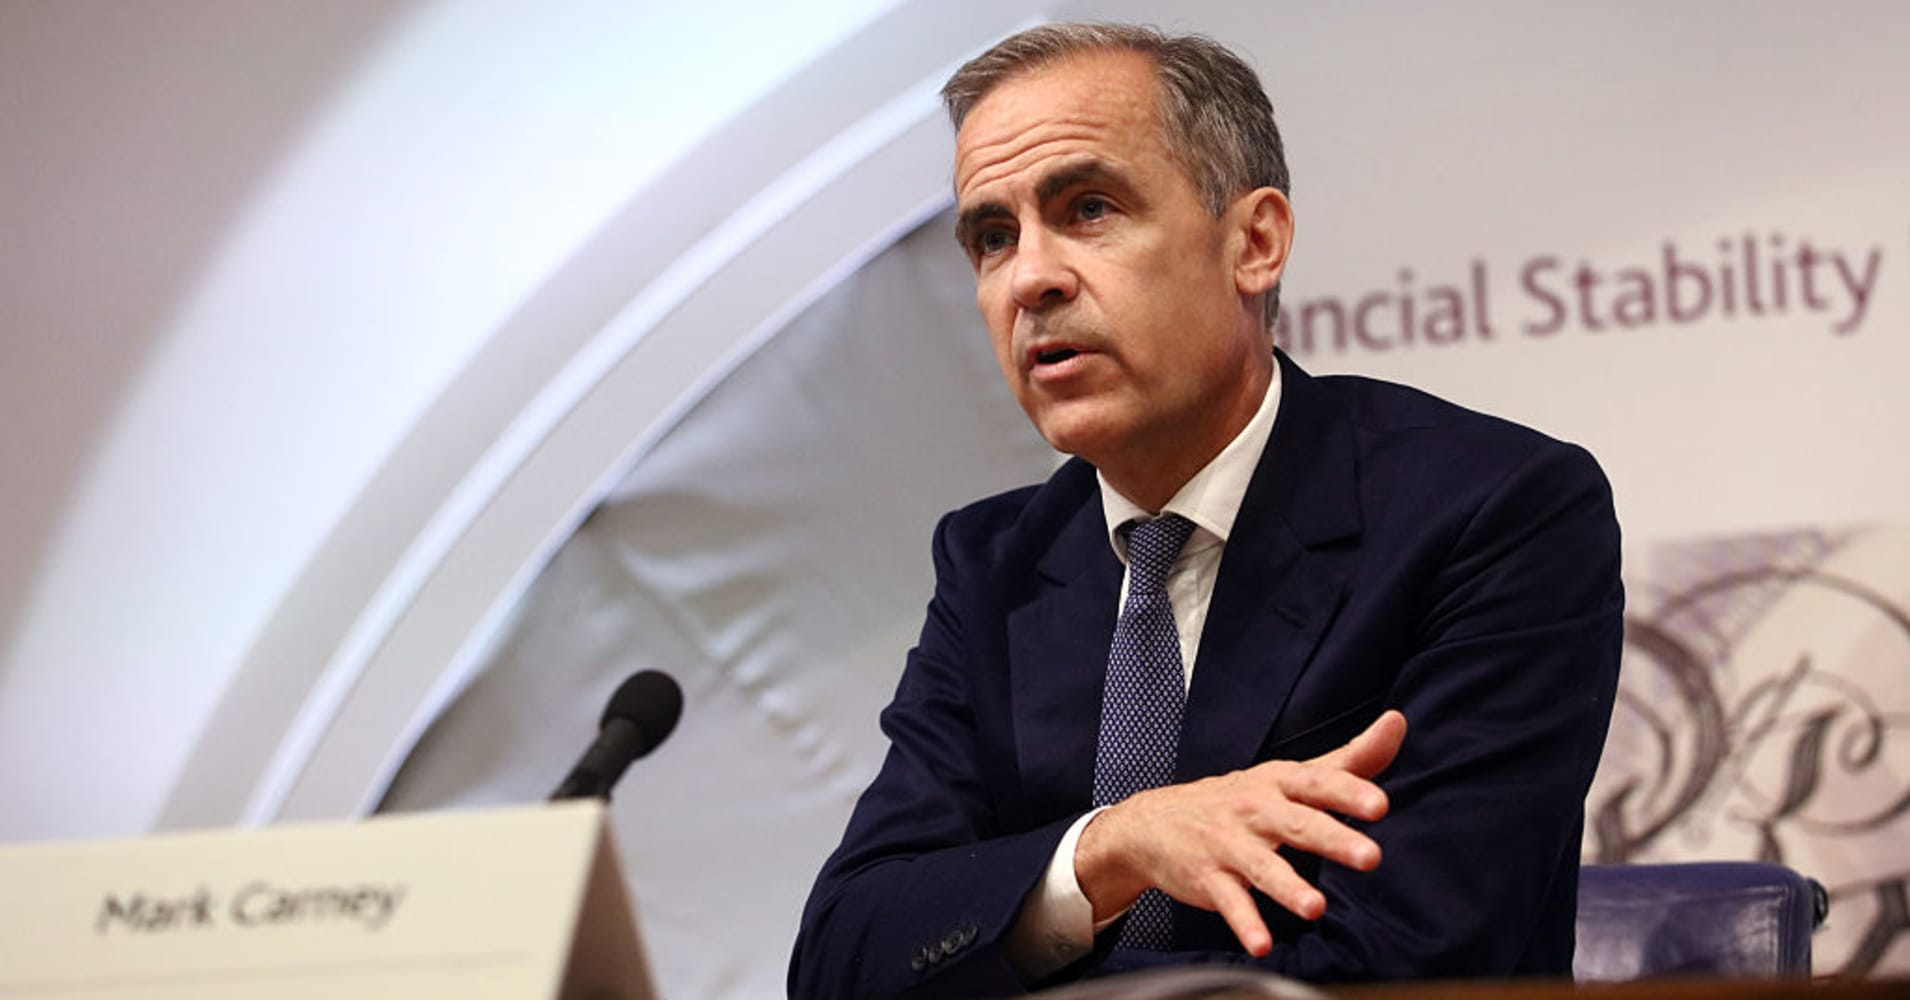 European markets mixed ahead of BOE rate decision; BT shares dive 8%